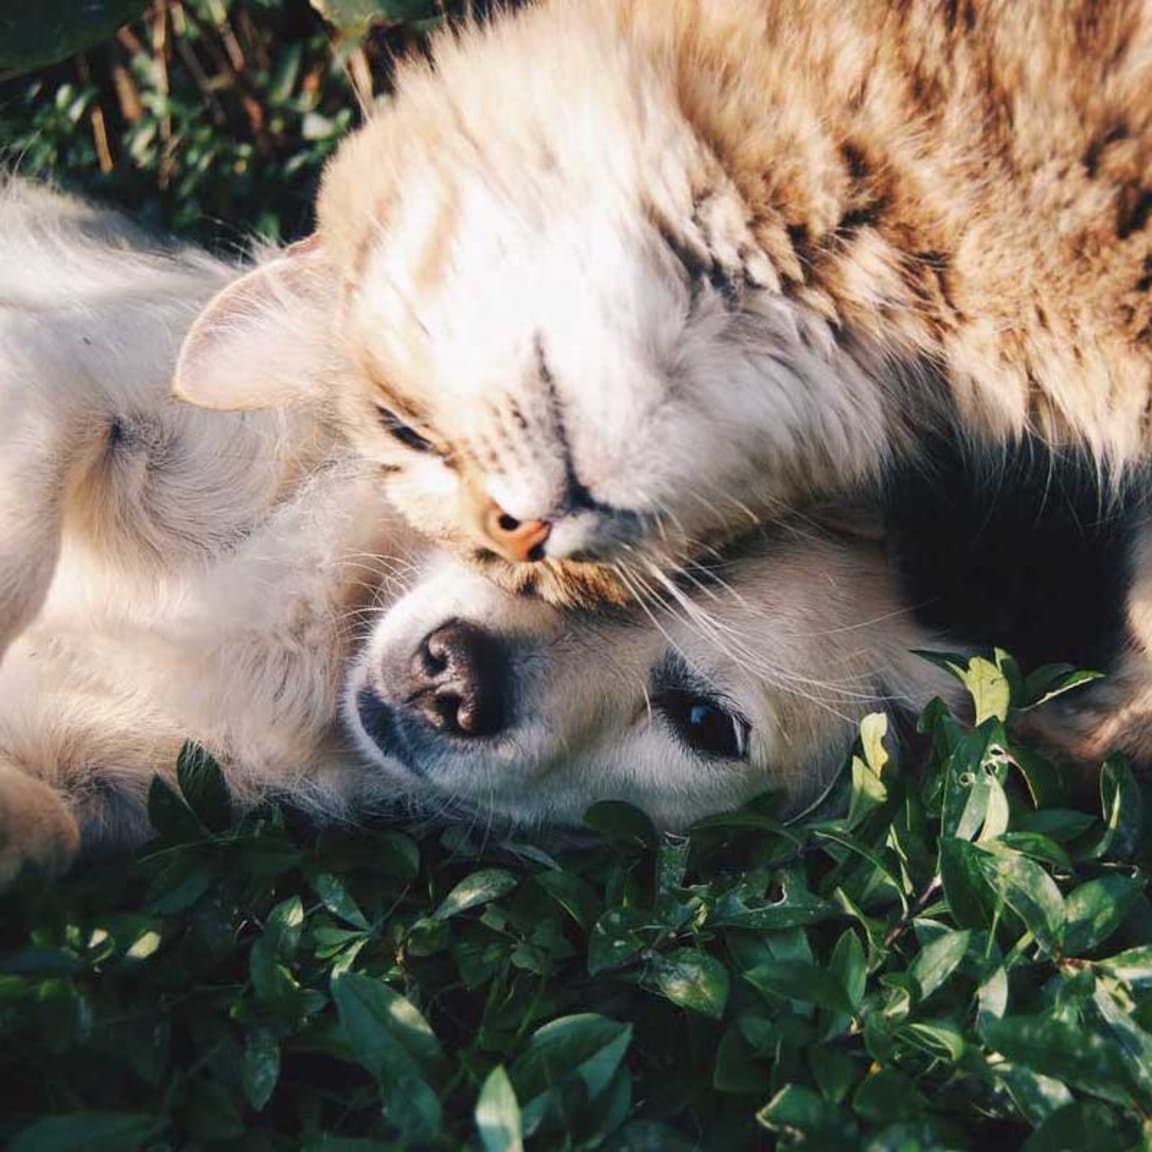 5 fun facts you didn't know about pheromones, cats and dogs